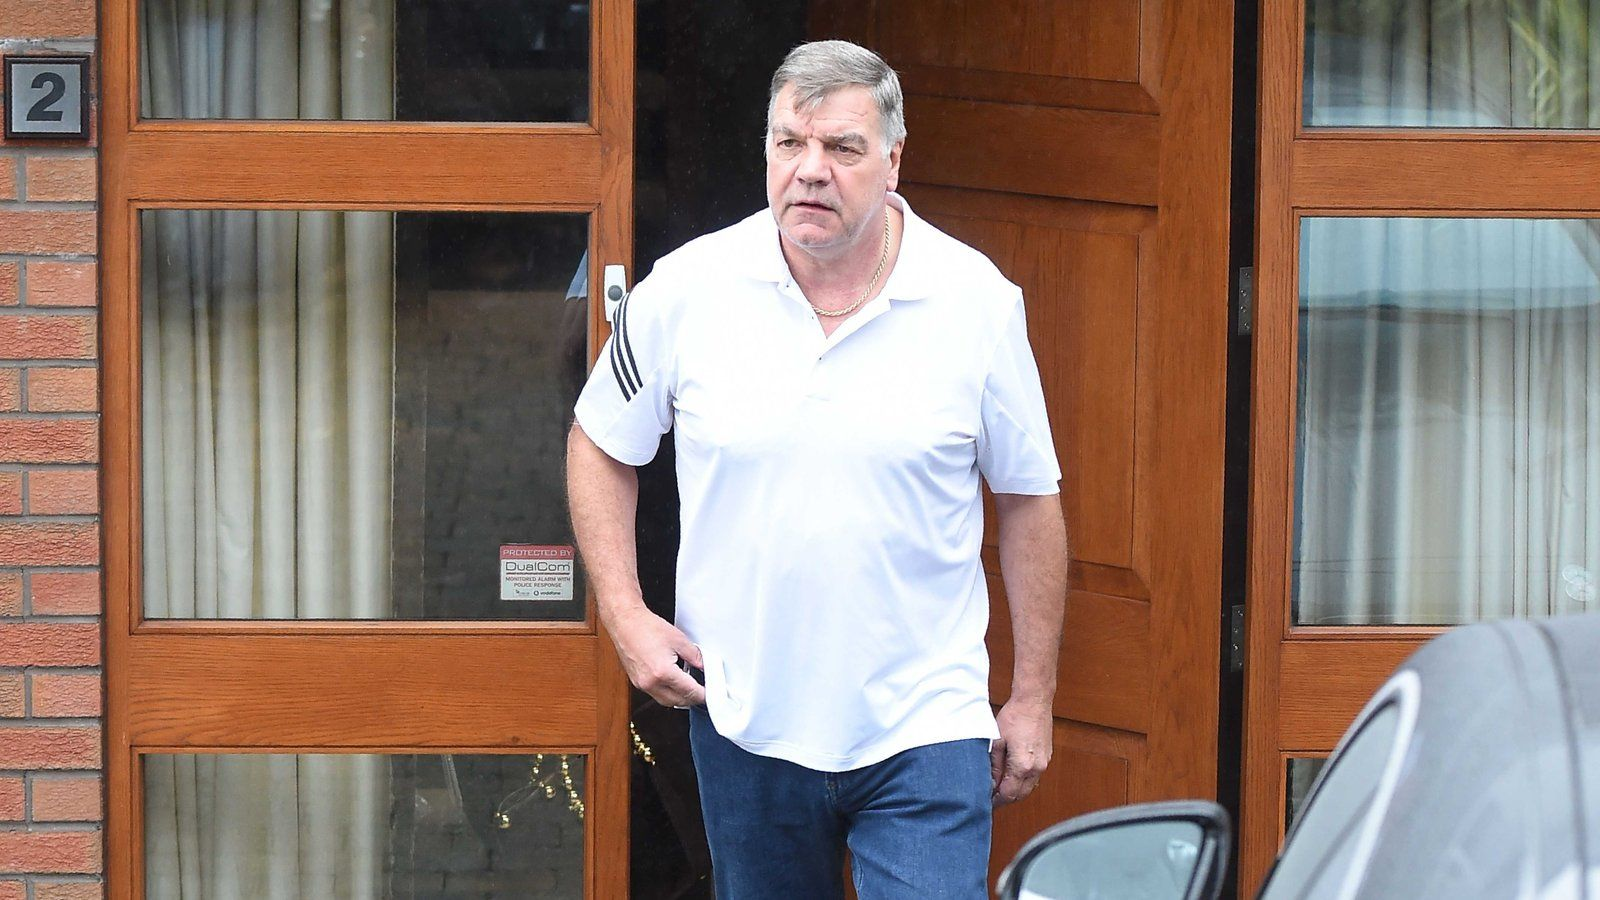 Allardyce It was a silly thing to do - RTE.ie